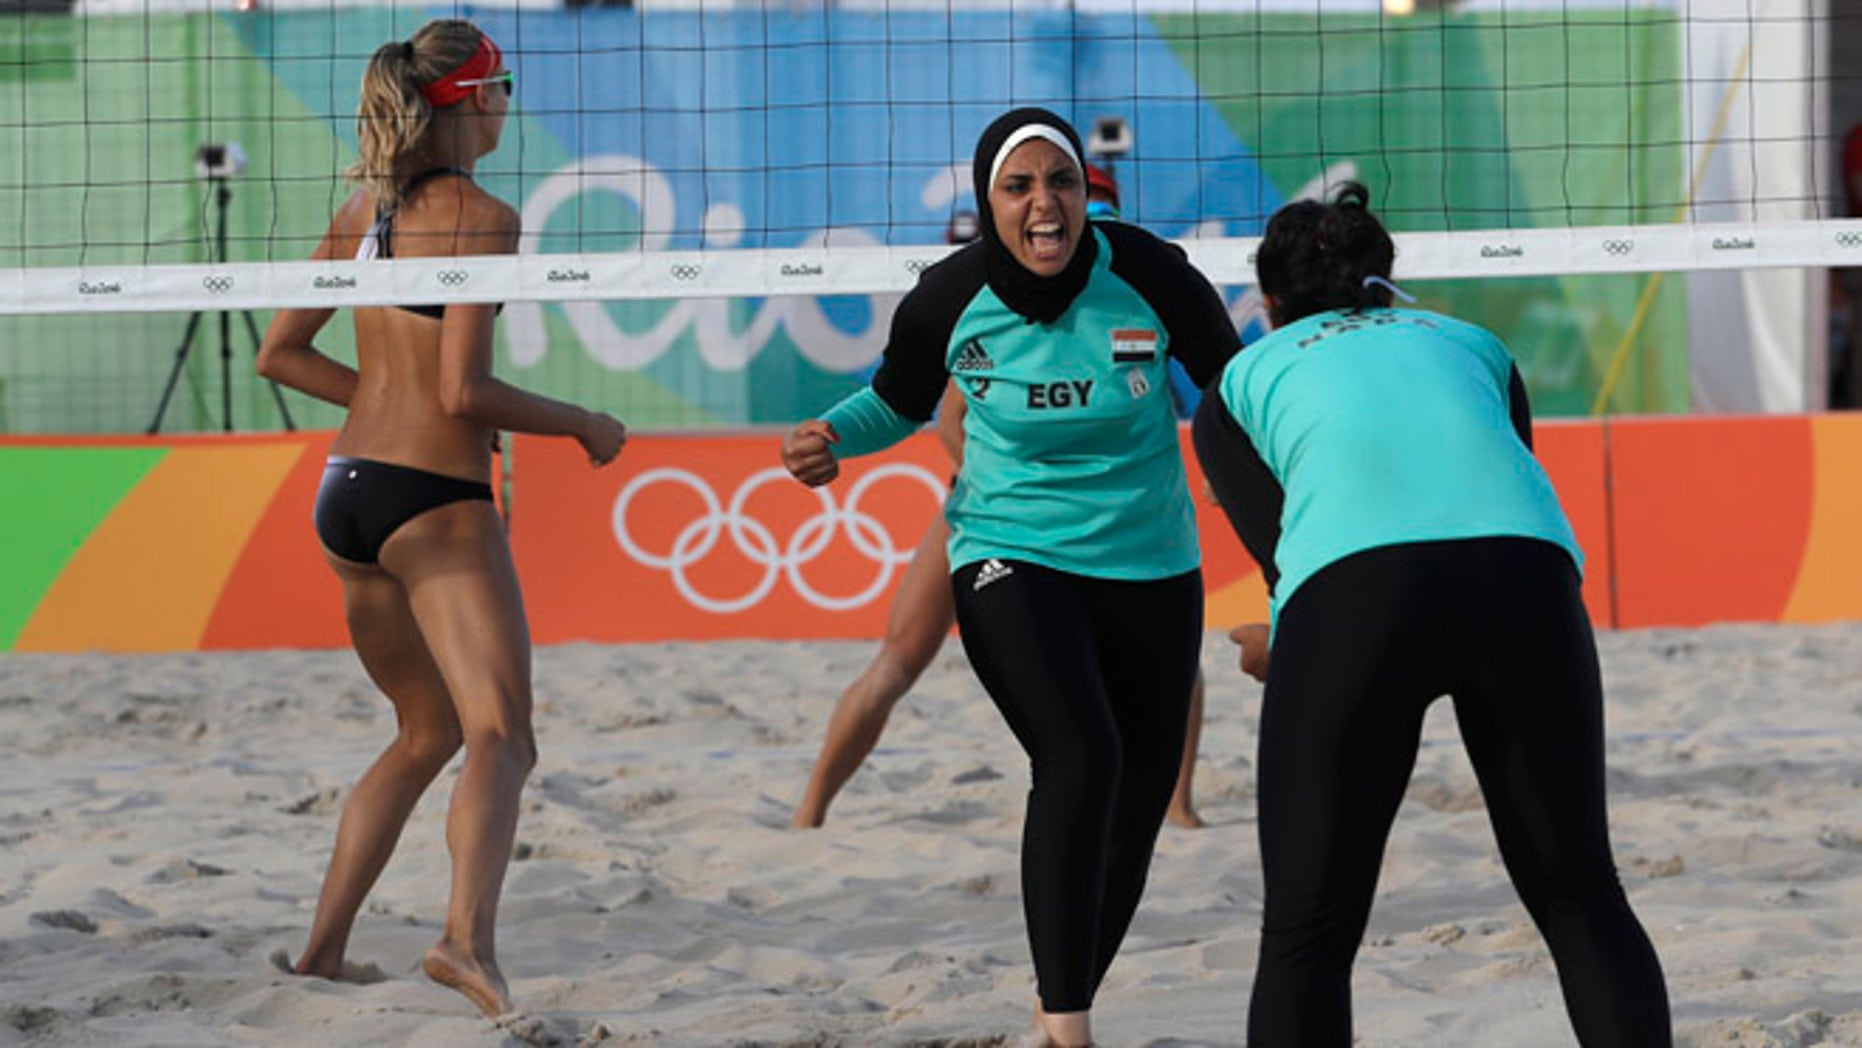 Aug. 11, 2016: Egypt's Doaa Elghobashy, center, celebrates a point with teammate Nada Meawad against Canada during a women's beach volleyball match at the 2016 Summer Olympics in Rio de Janeiro, Brazil.